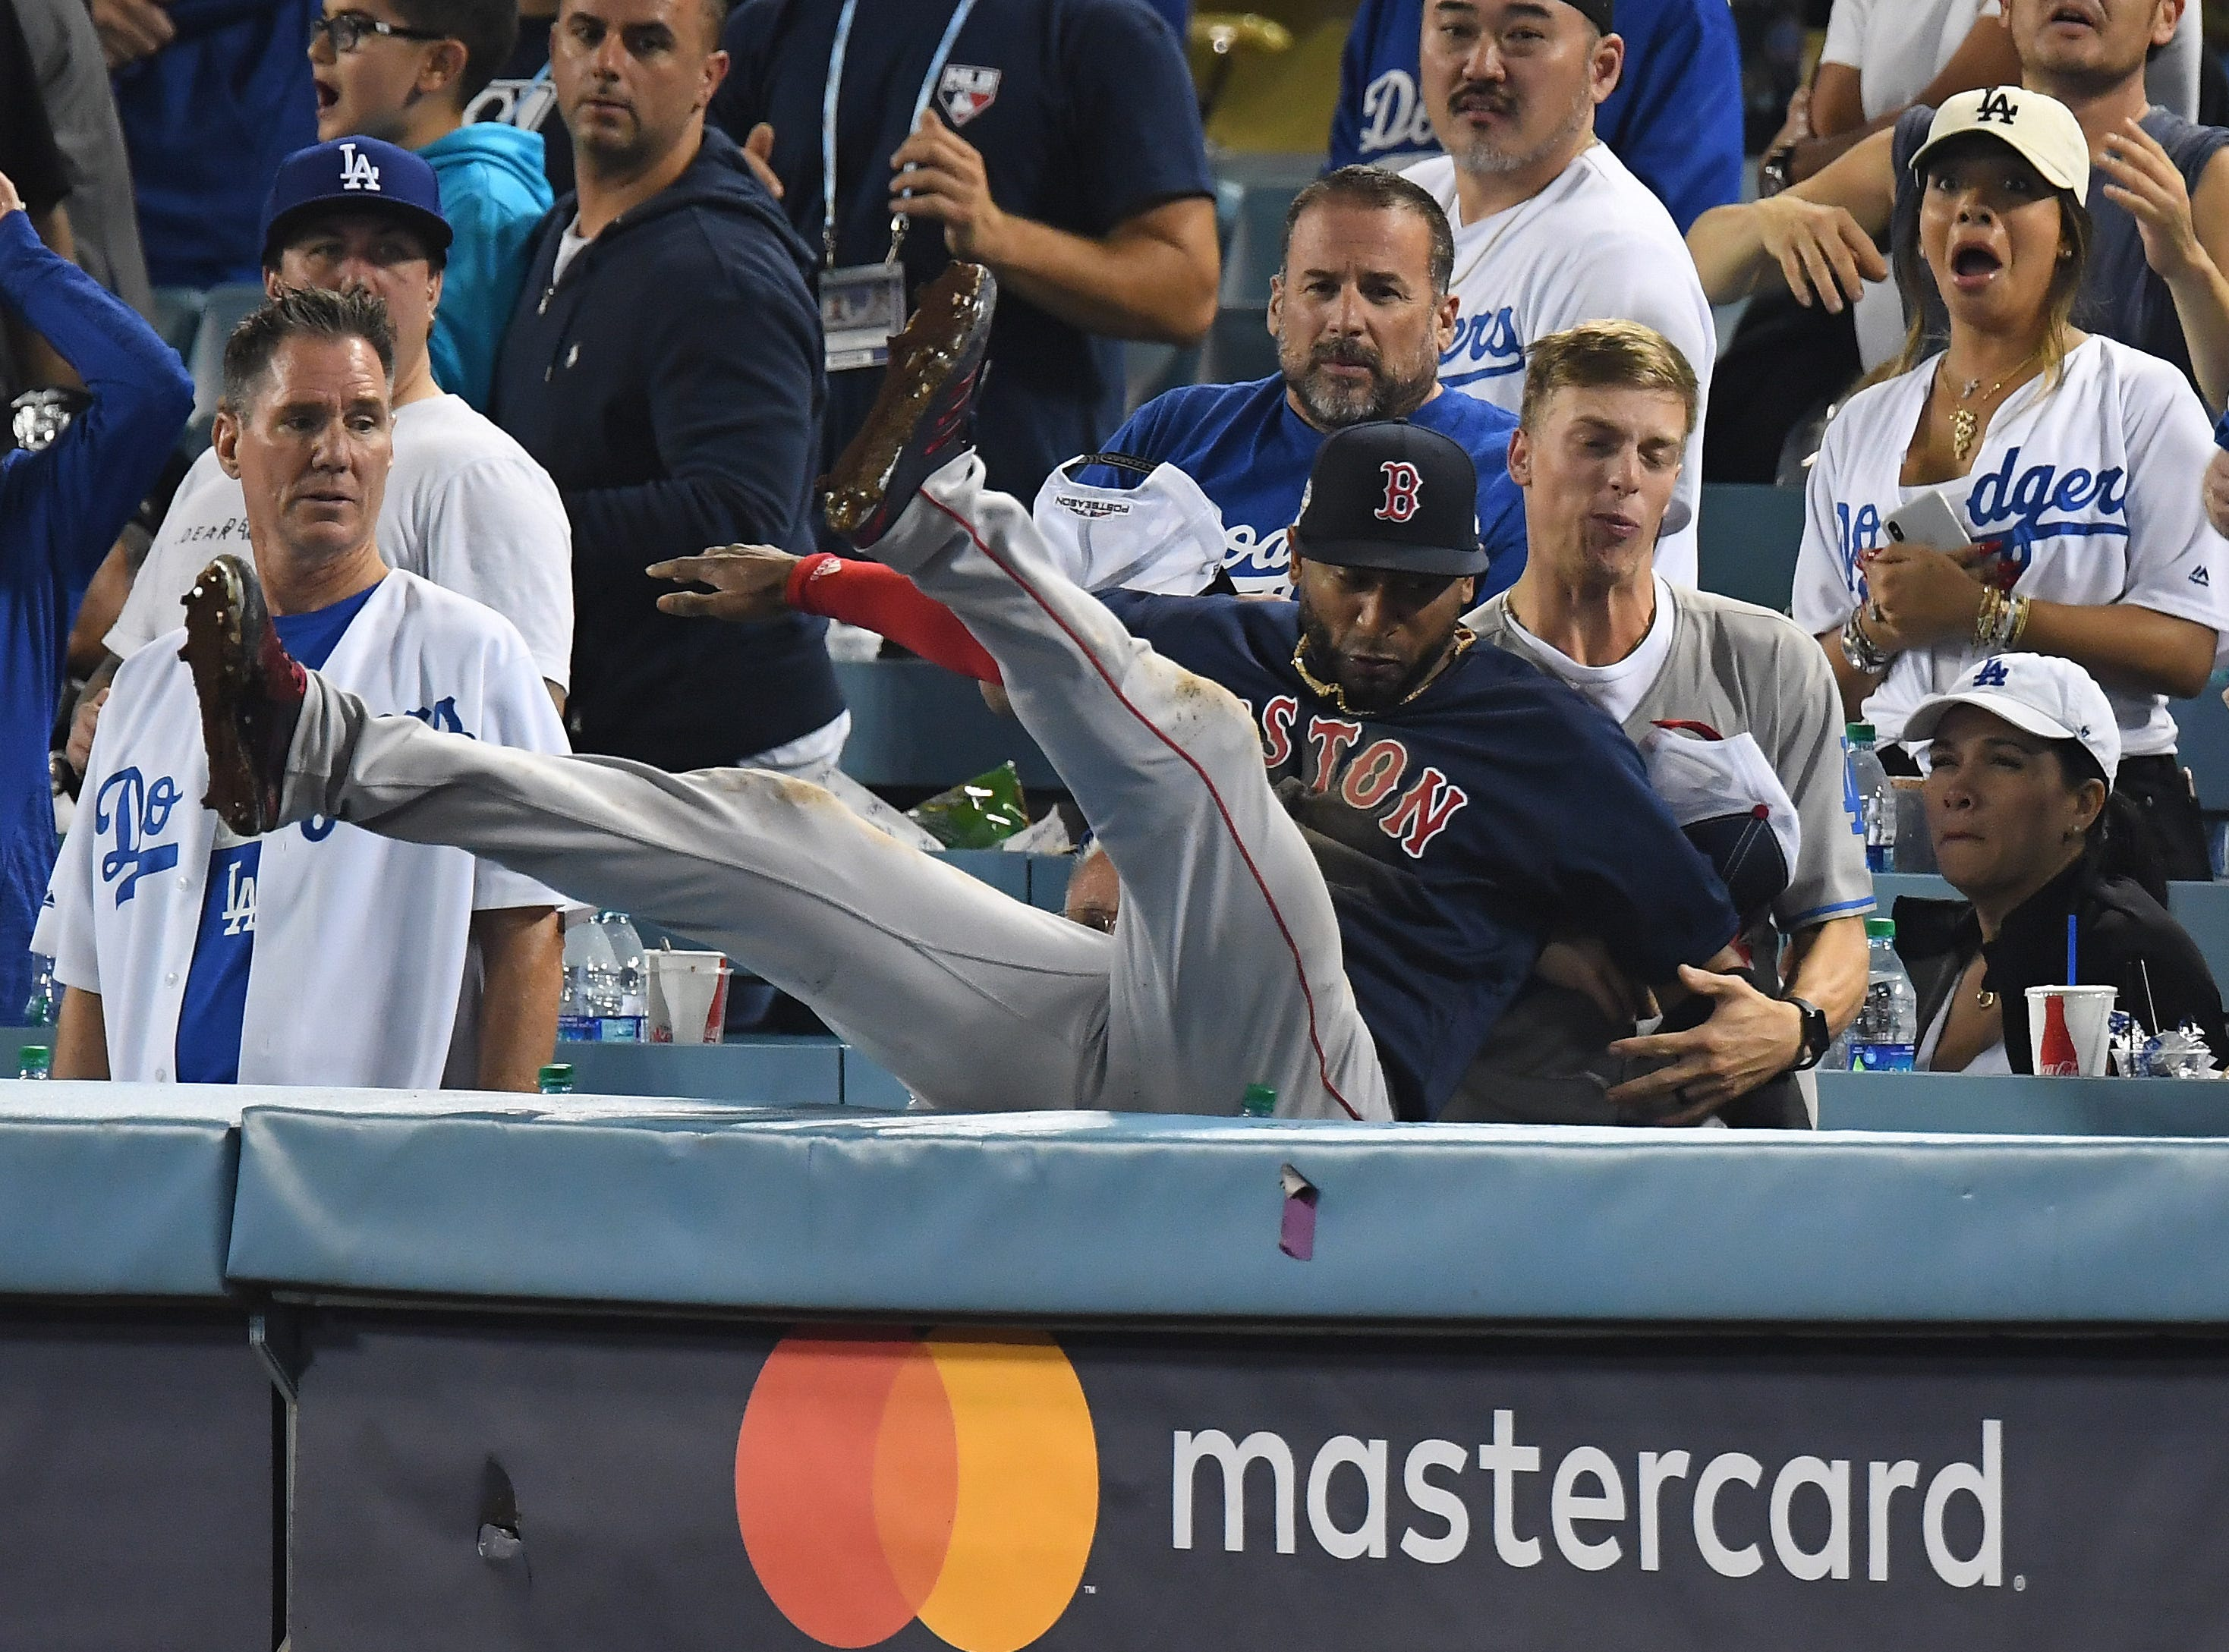 Game 3 at Dodger Stadium: Eduardo Nunez makes the catch and falls into the stands in the 13th inning.